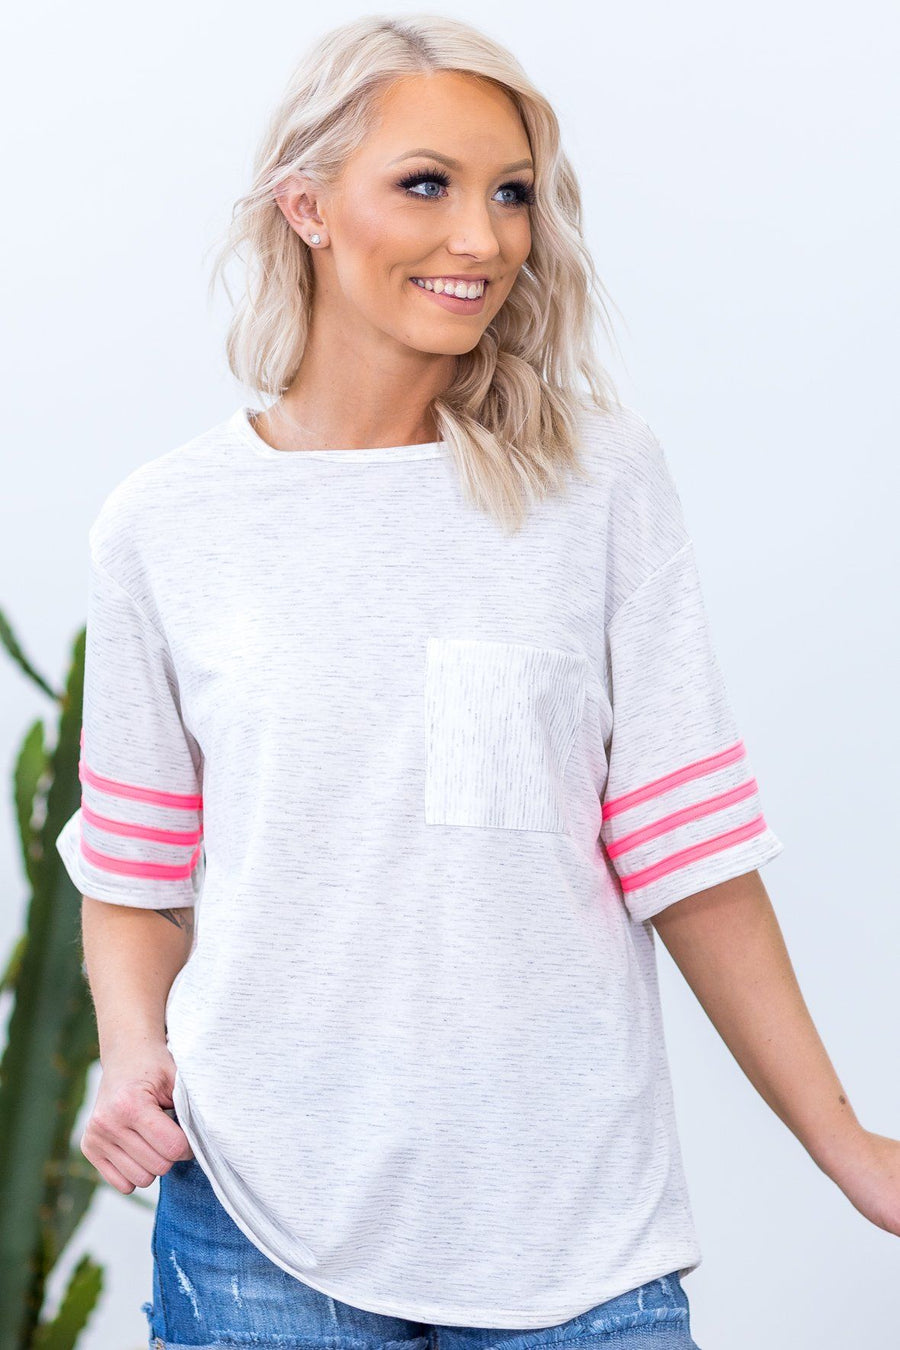 b5452a46e4 Over You Short Neon Pink Stripe Sleeve Chest Pocket Top in Heather Grey